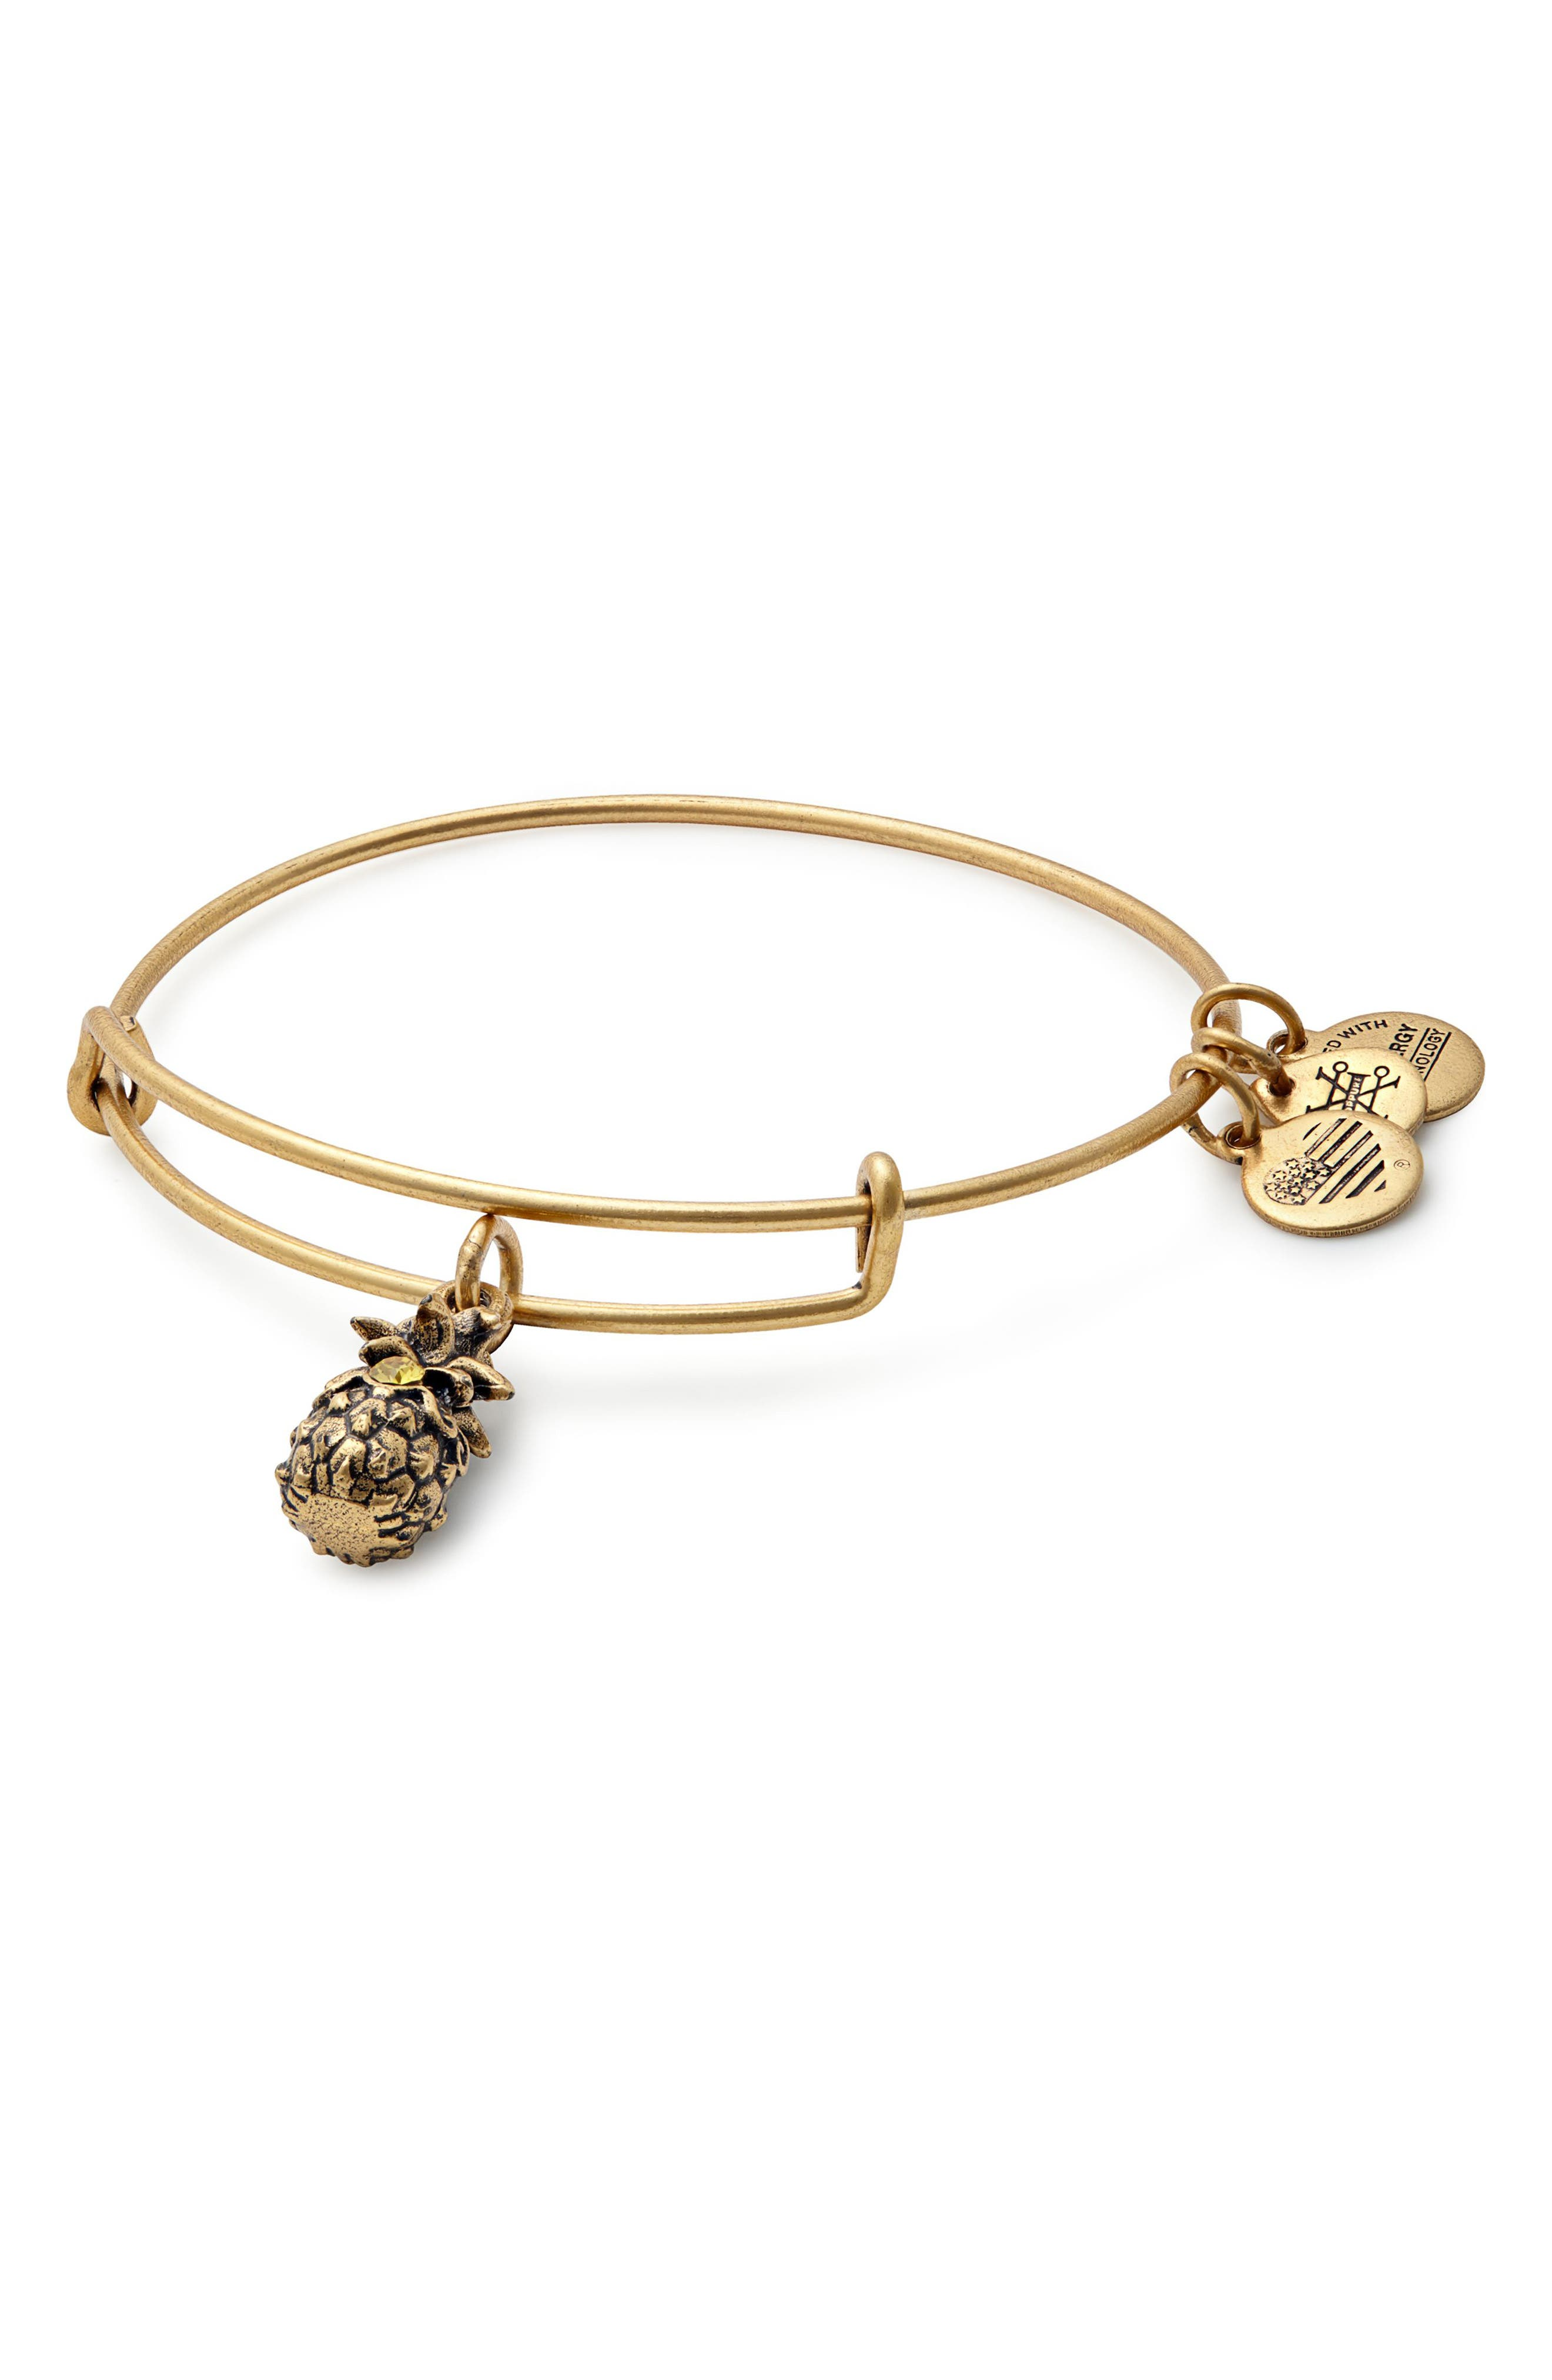 Pineapple Adjustable Wire Bangle,                             Main thumbnail 1, color,                             RUSSIAN GOLD